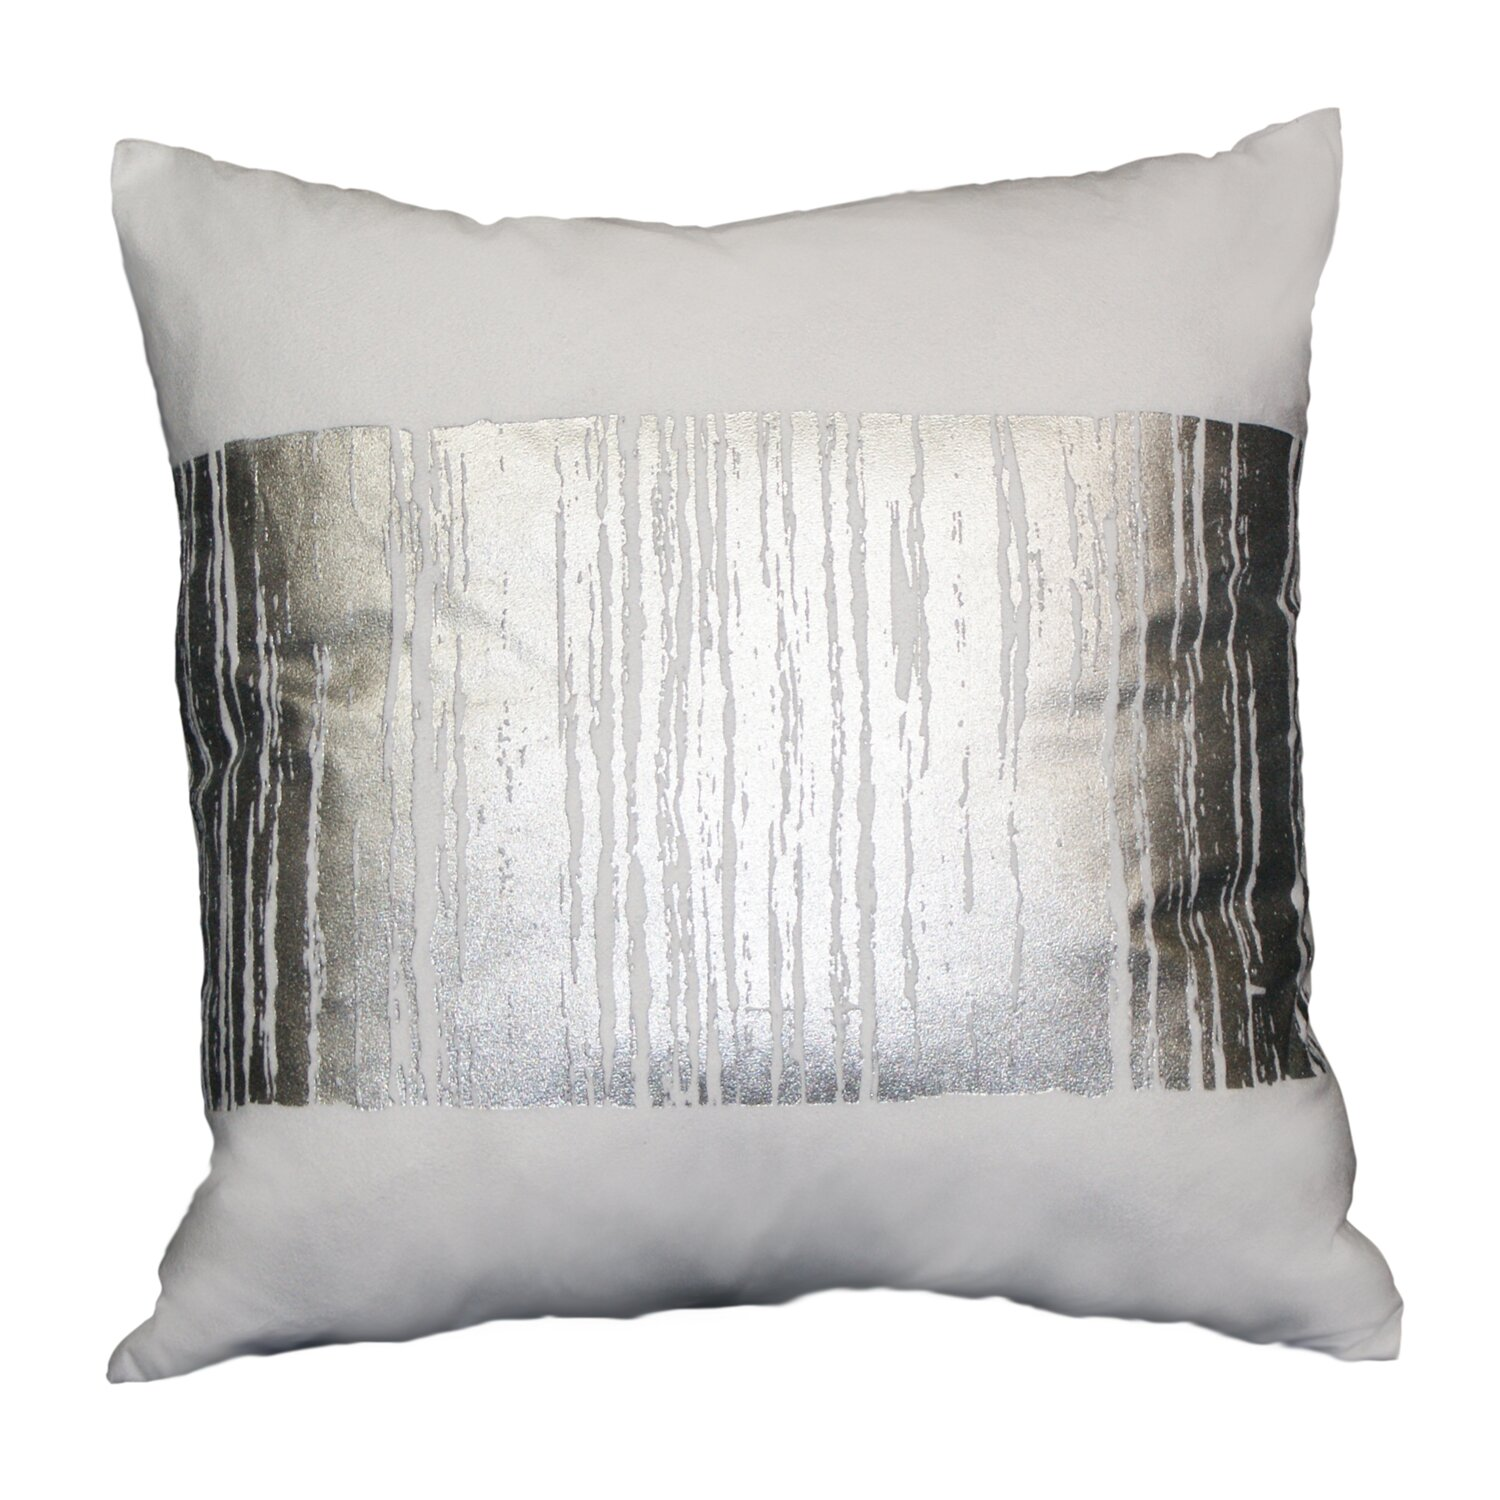 Westex Couch Potatoes Foil Fade Stripe Throw Pillow